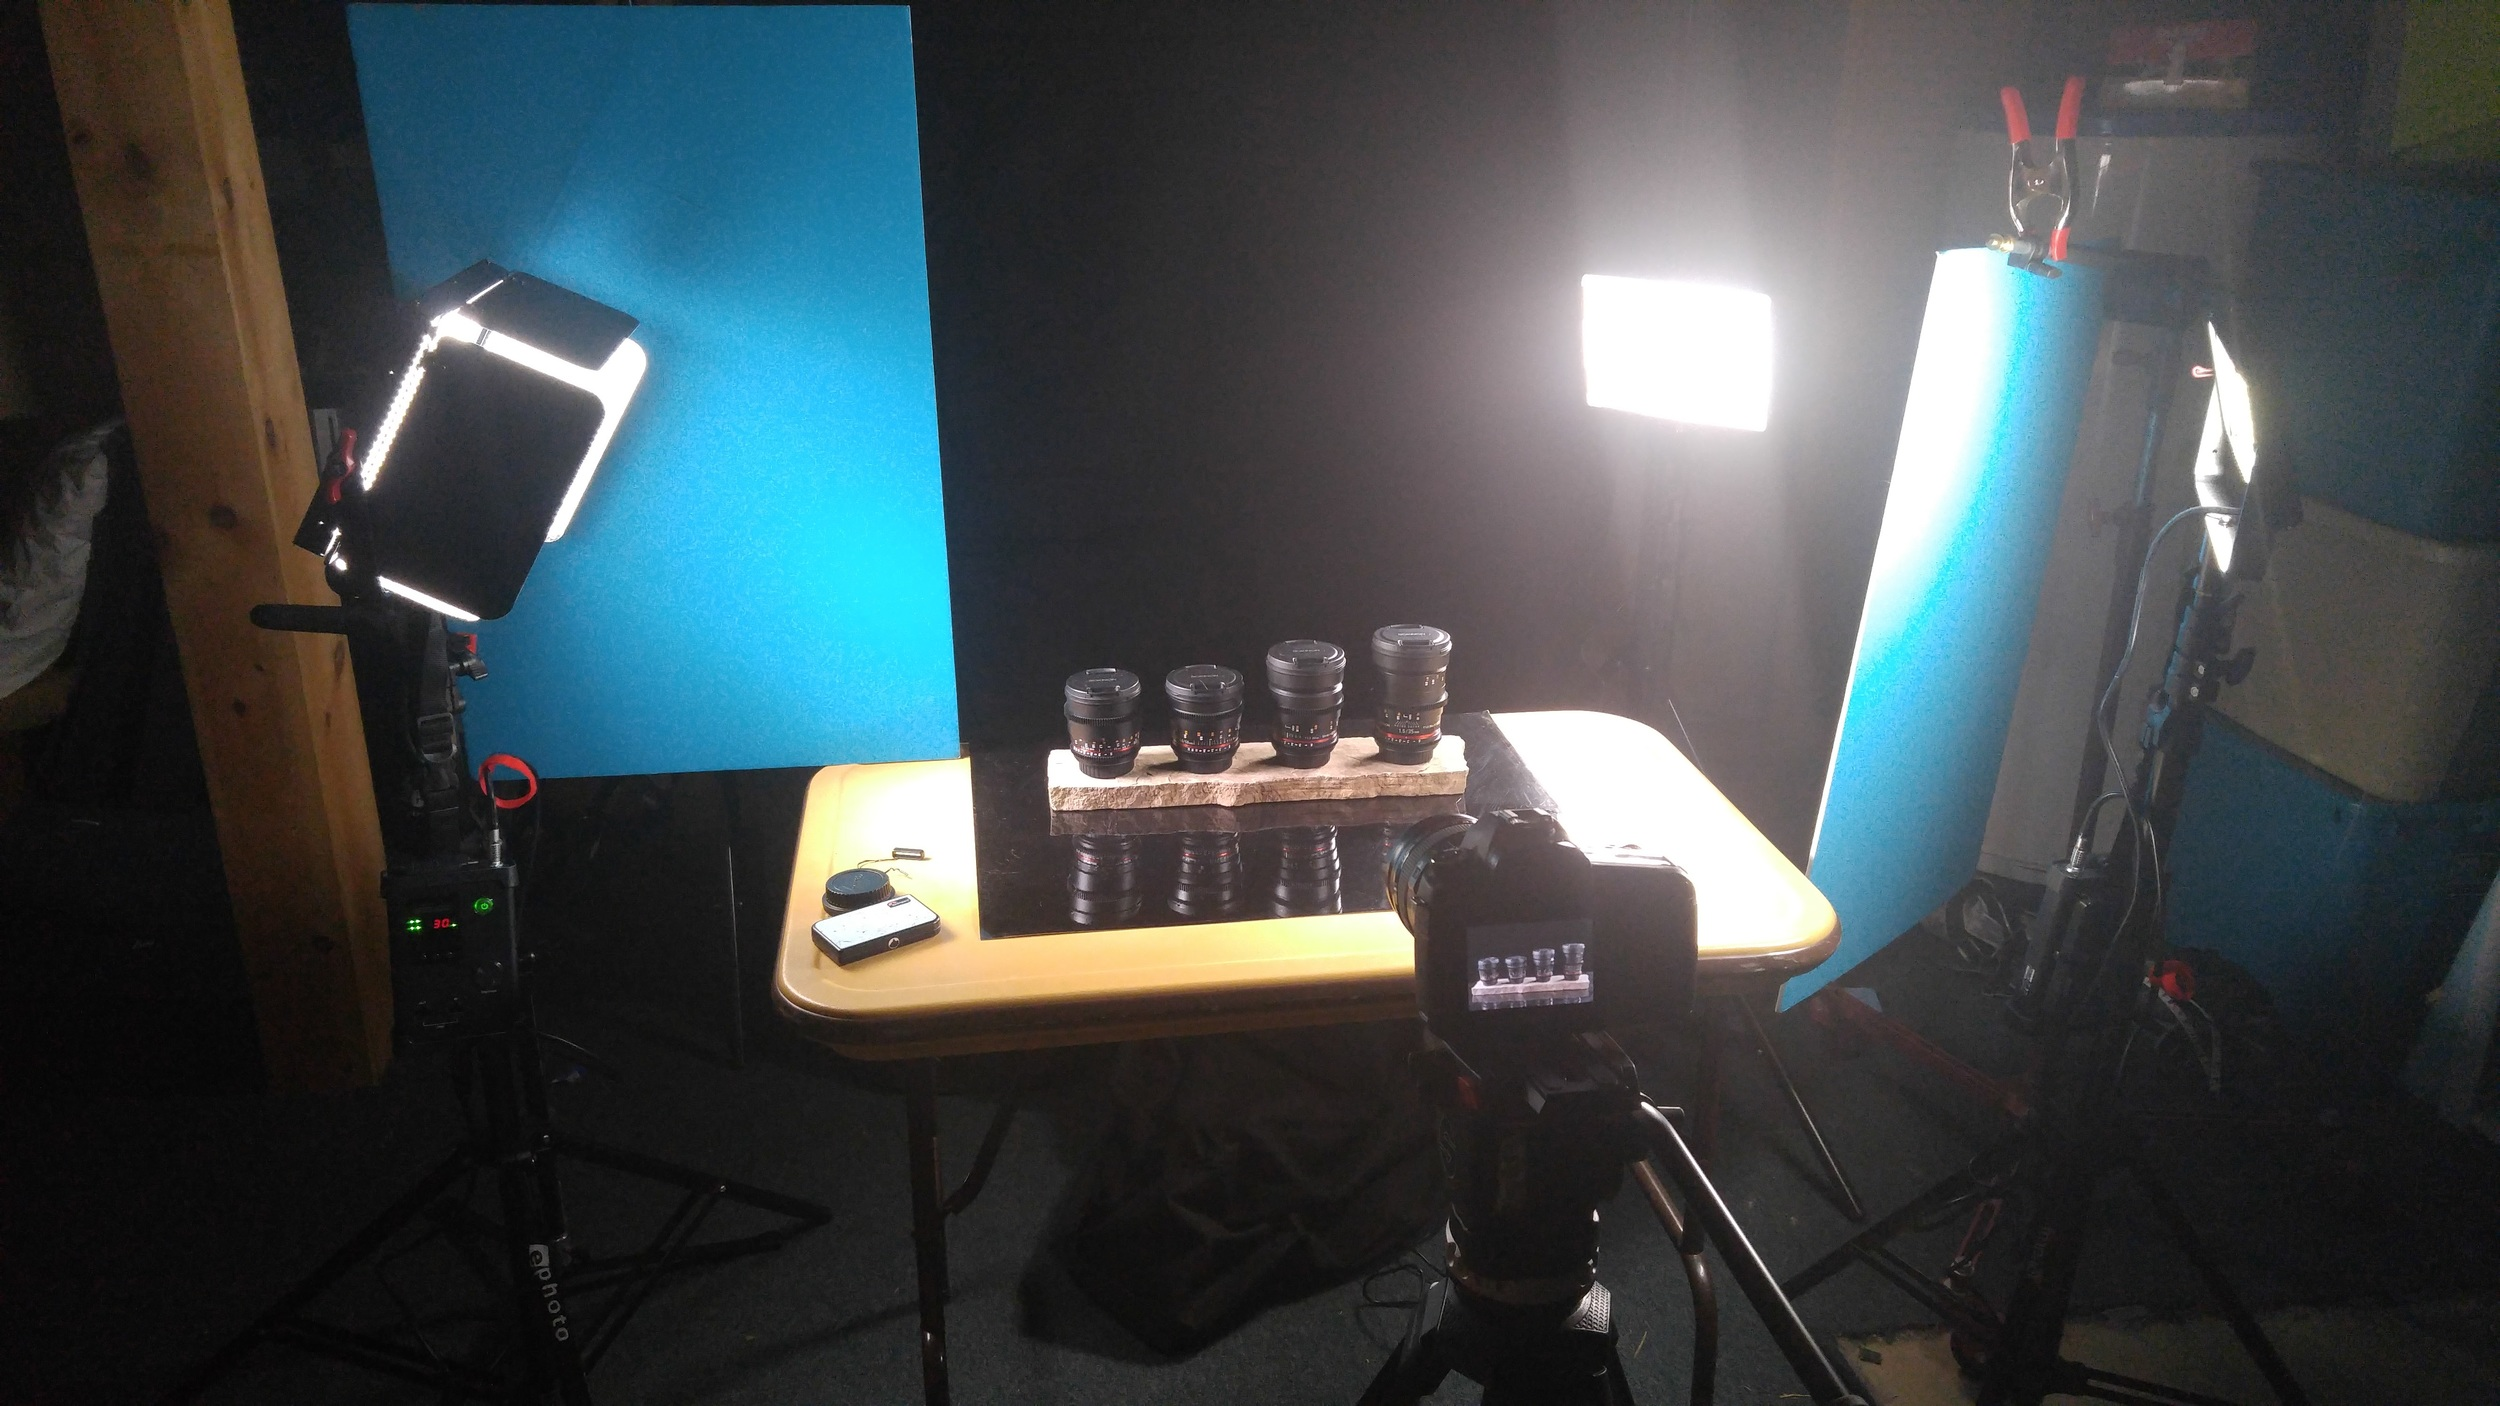 Three LED lights from Aputure were used to light the Rokinon Primes.